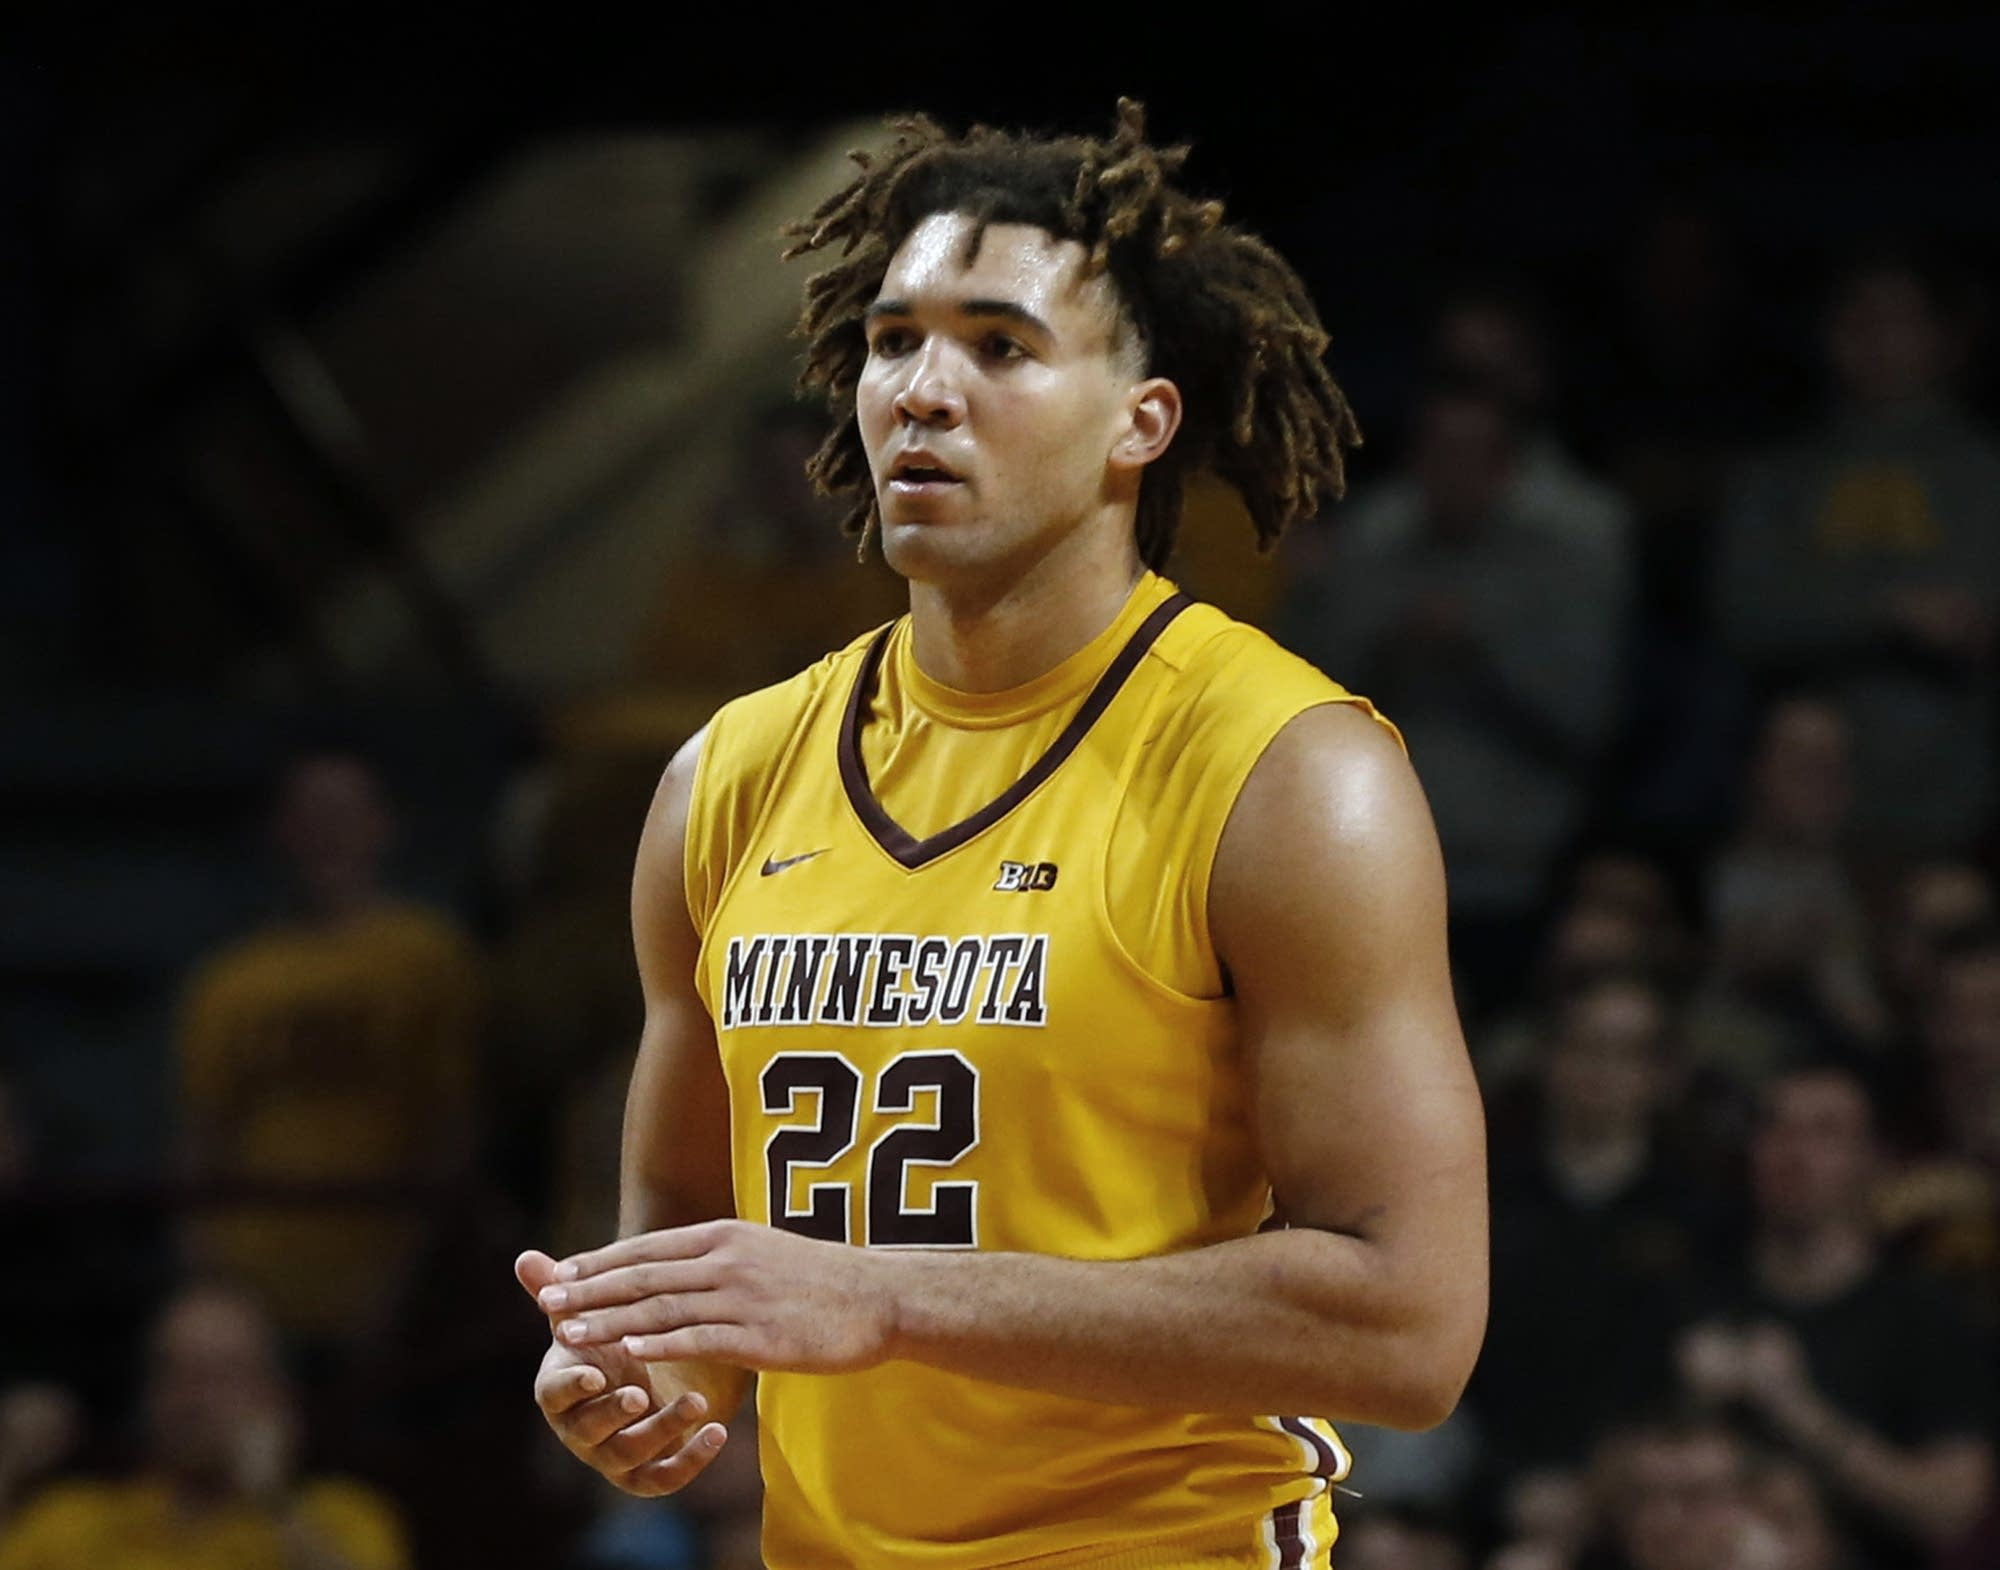 Gophers star Reggie Lynch faces suspension until 2020 for sex misconduct violation